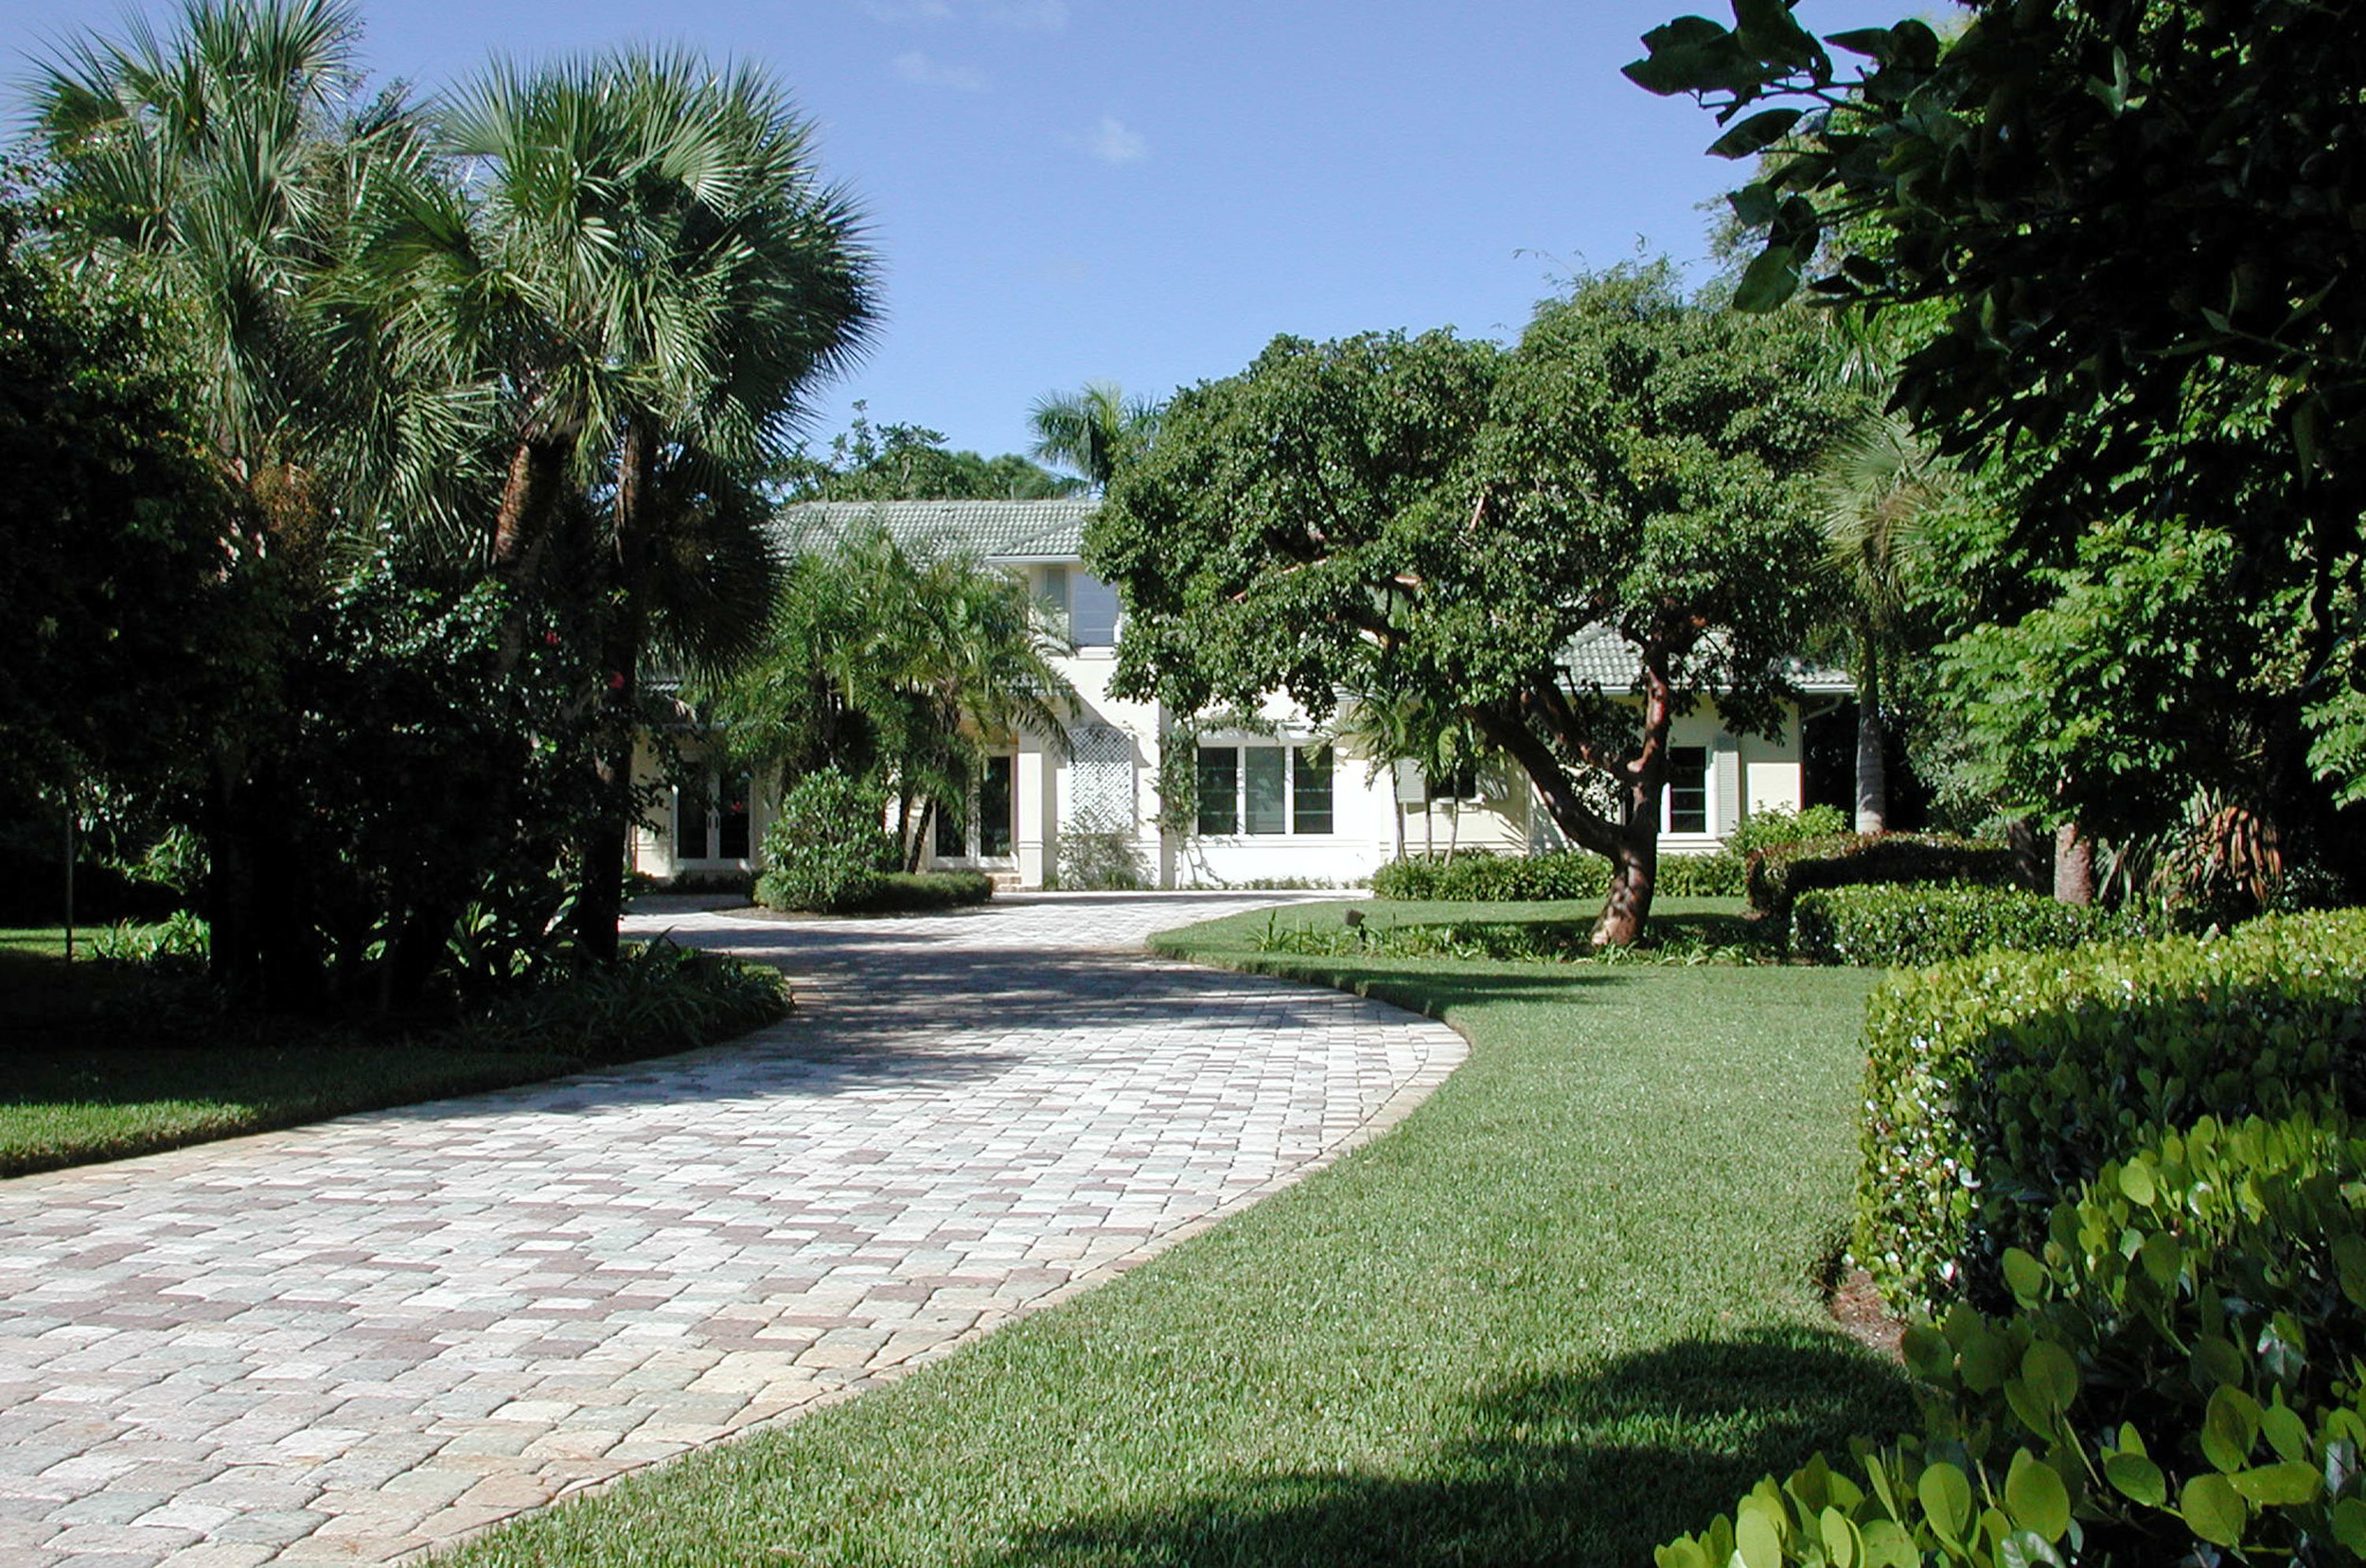 Loxahatchee River Residence Main Paver Entry.jpg